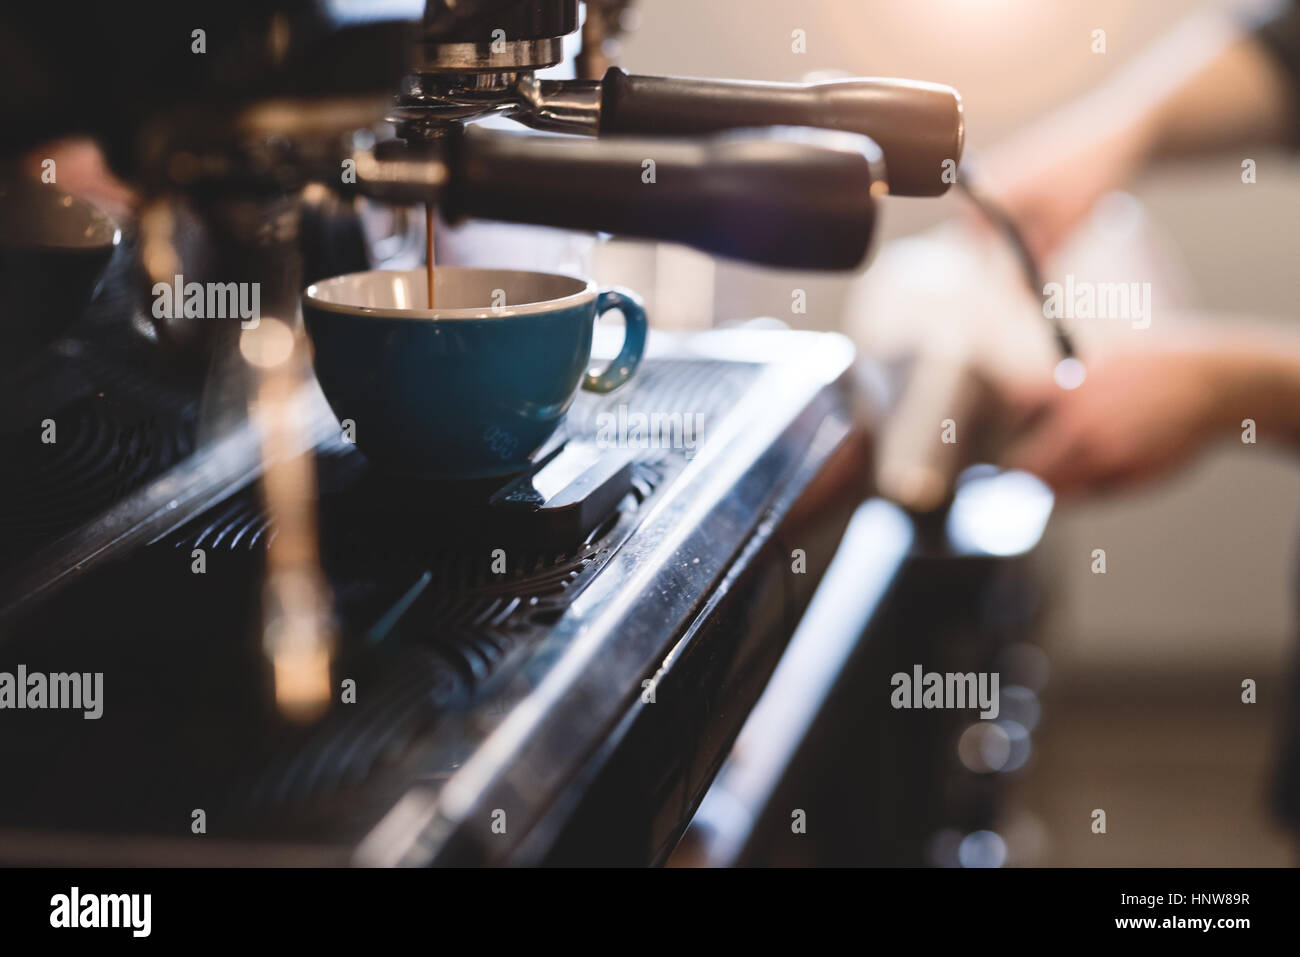 Coffee machine filling cup - Stock Image